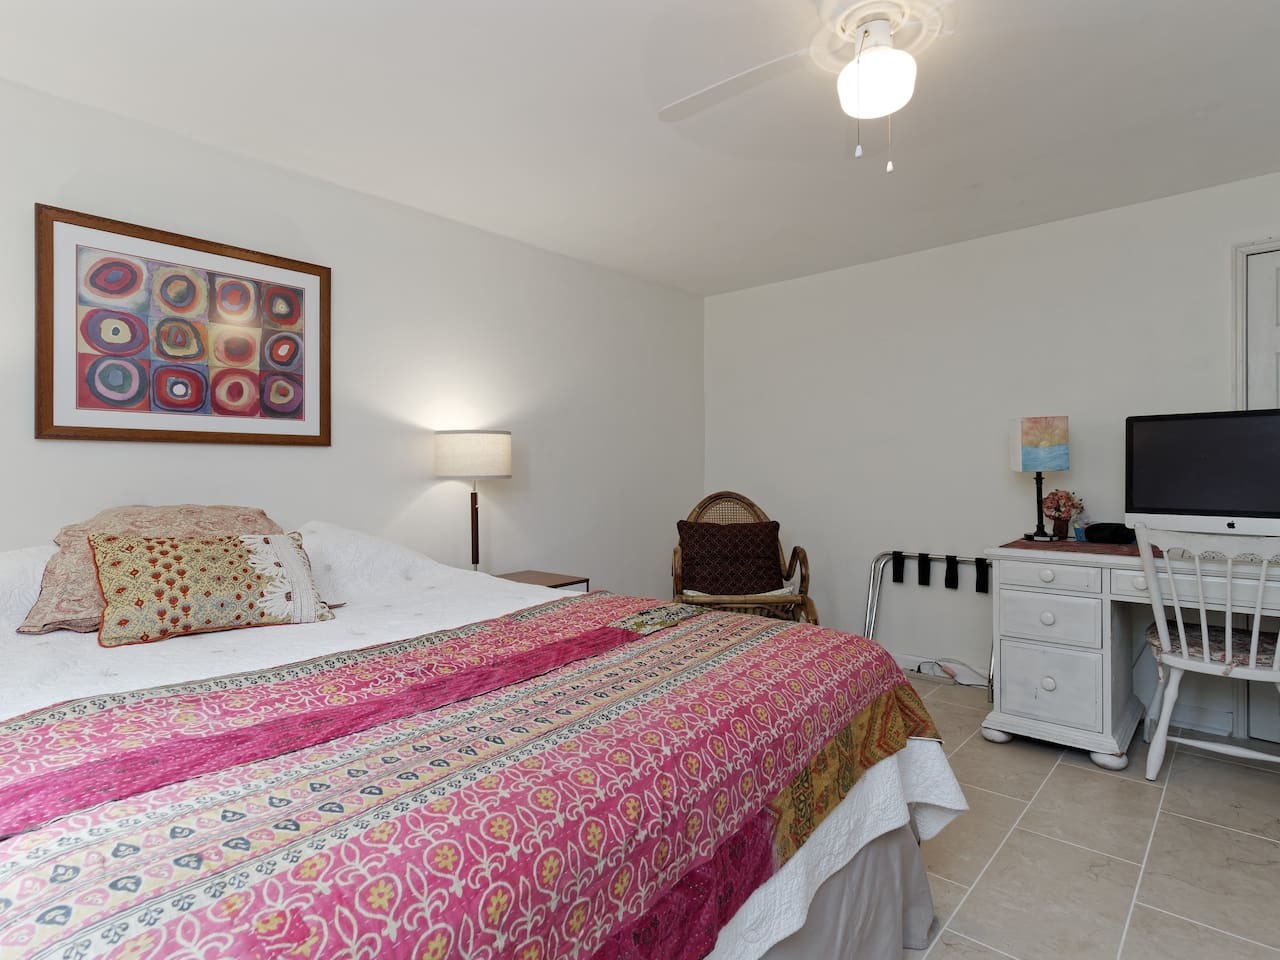 Welcome to a dark, quiet, comfortable bedroom! Queen-sized bed, rocker, ceiling fan, luggage rack, desk, PC with WiFi, books, brightly lit with LD lights, plus more, in the bedroom.